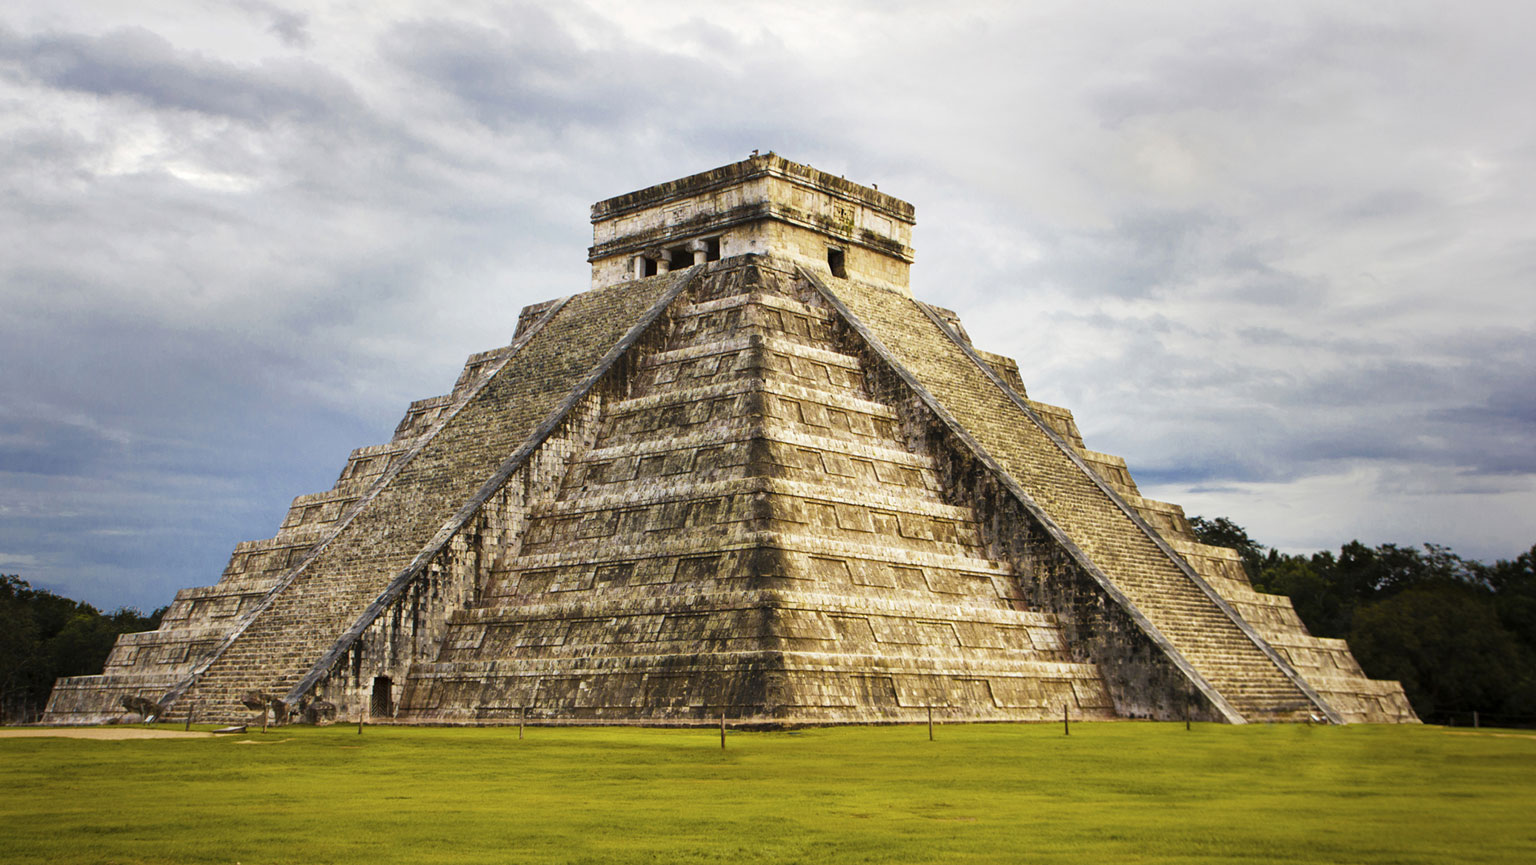 Chichen Itza—Maya Capital of the Yucatán